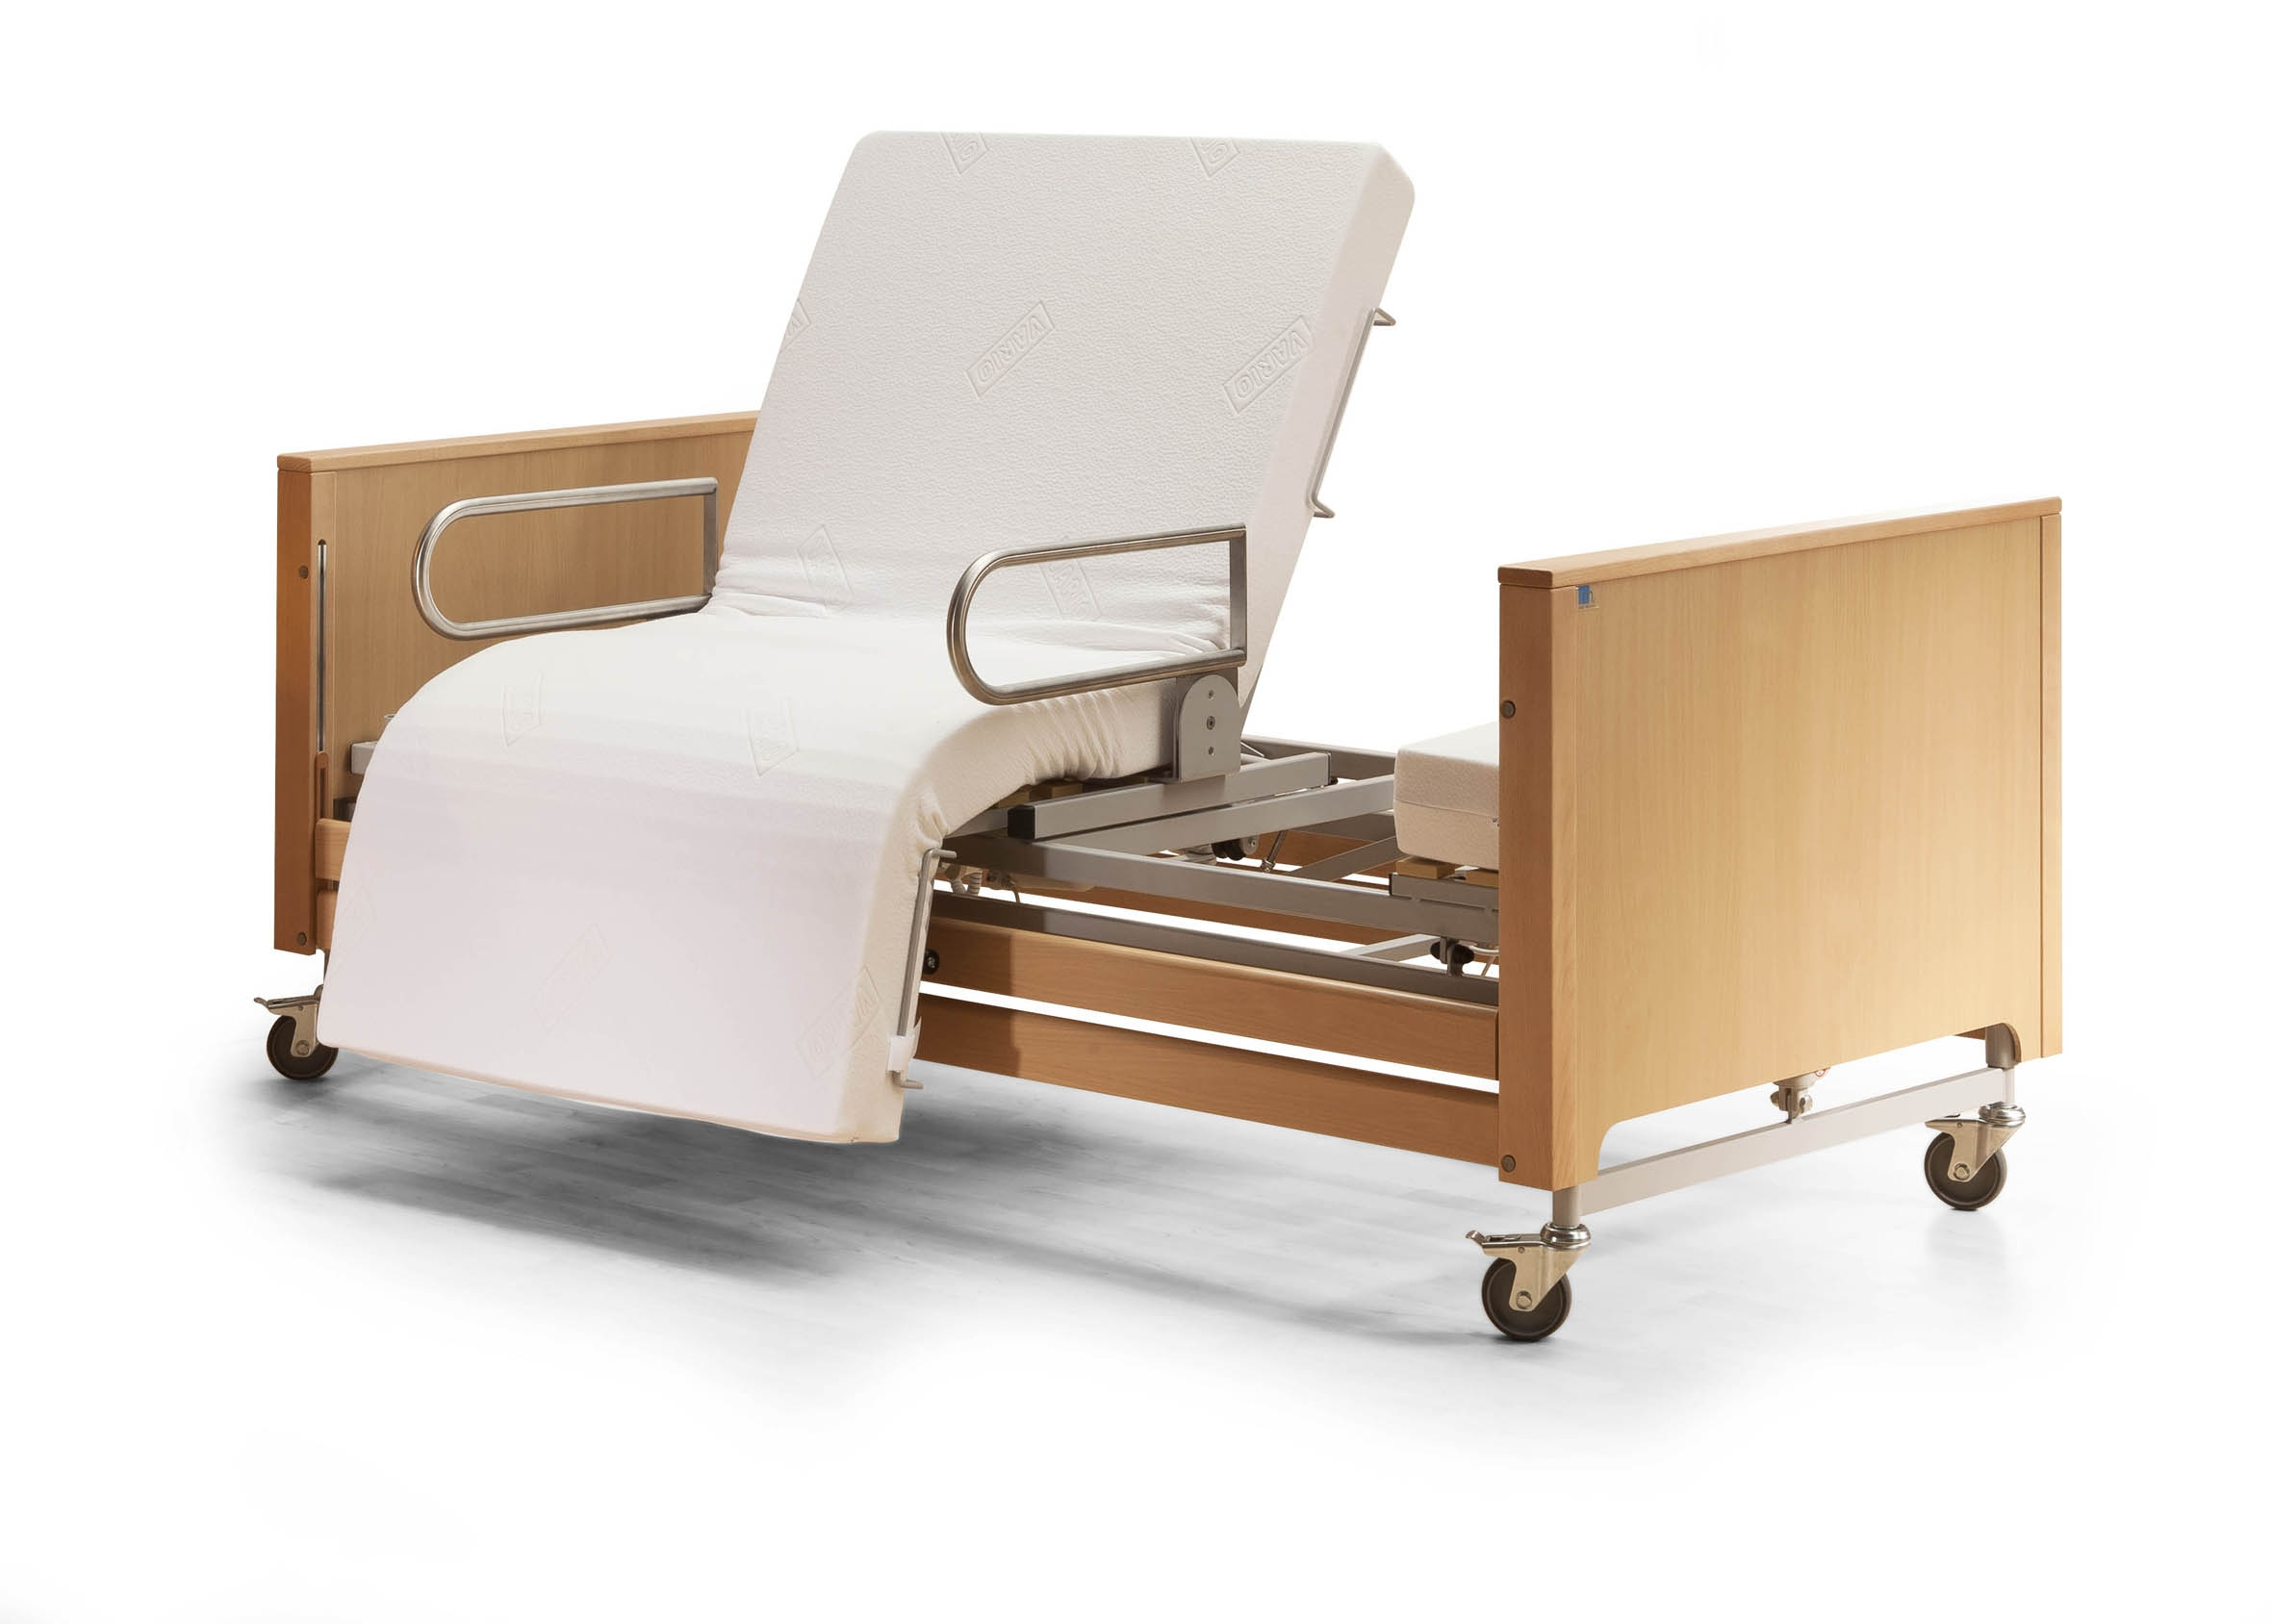 Motorized hospital beds care bed motorised mobilia casa e for Mobilia outlet